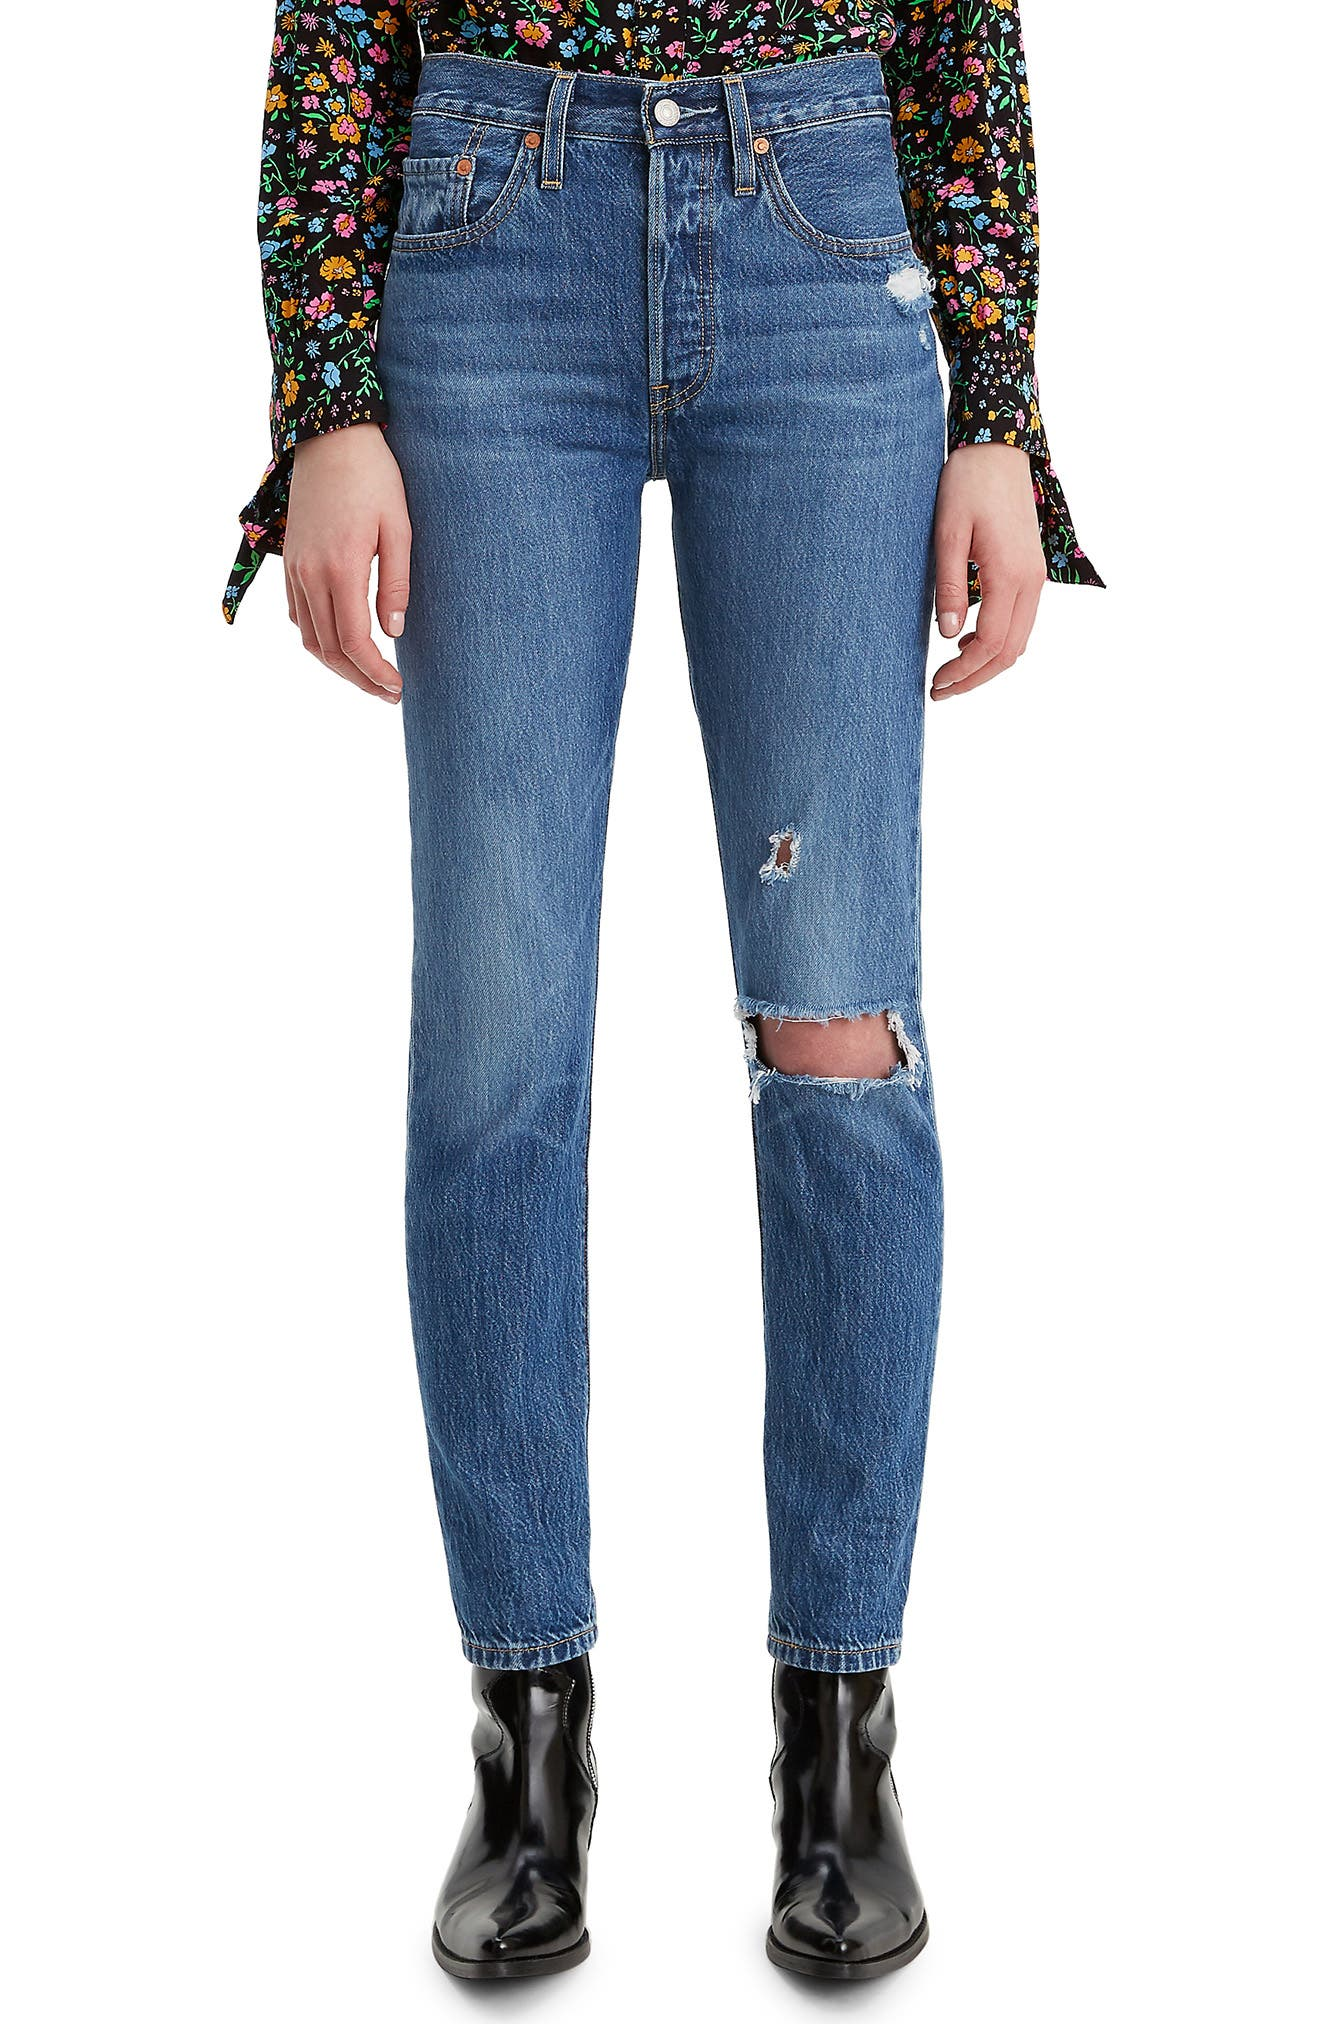 women's levi's 501 ripped high waist ankle skinny jeans